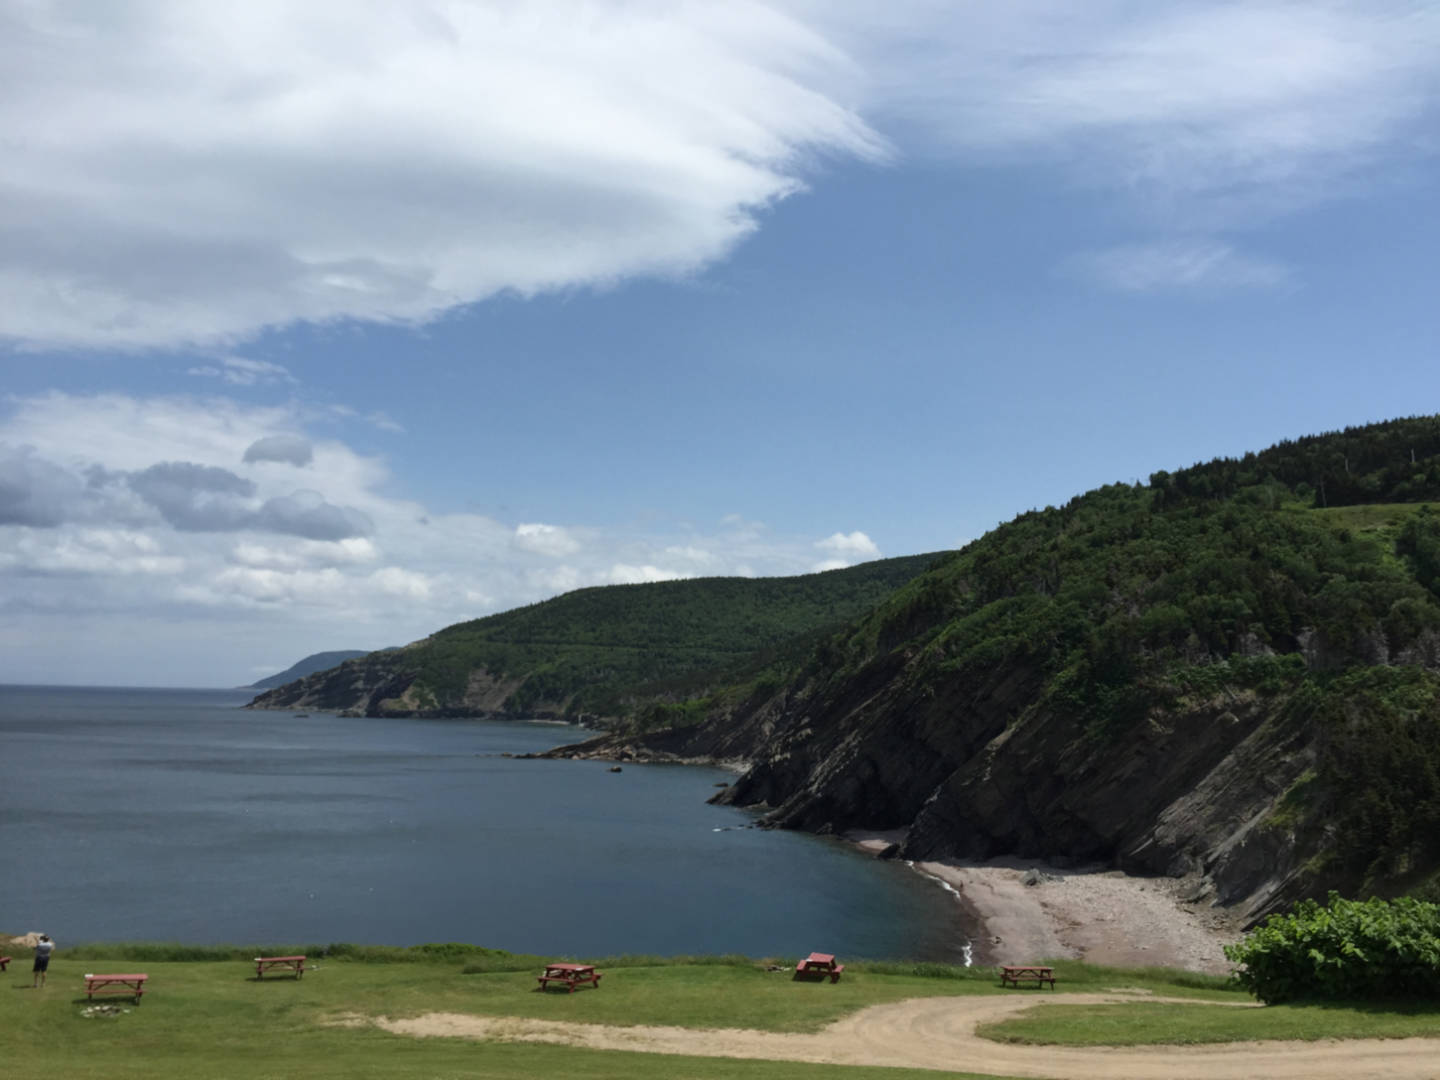 A photo of Meat Cove campground in NS